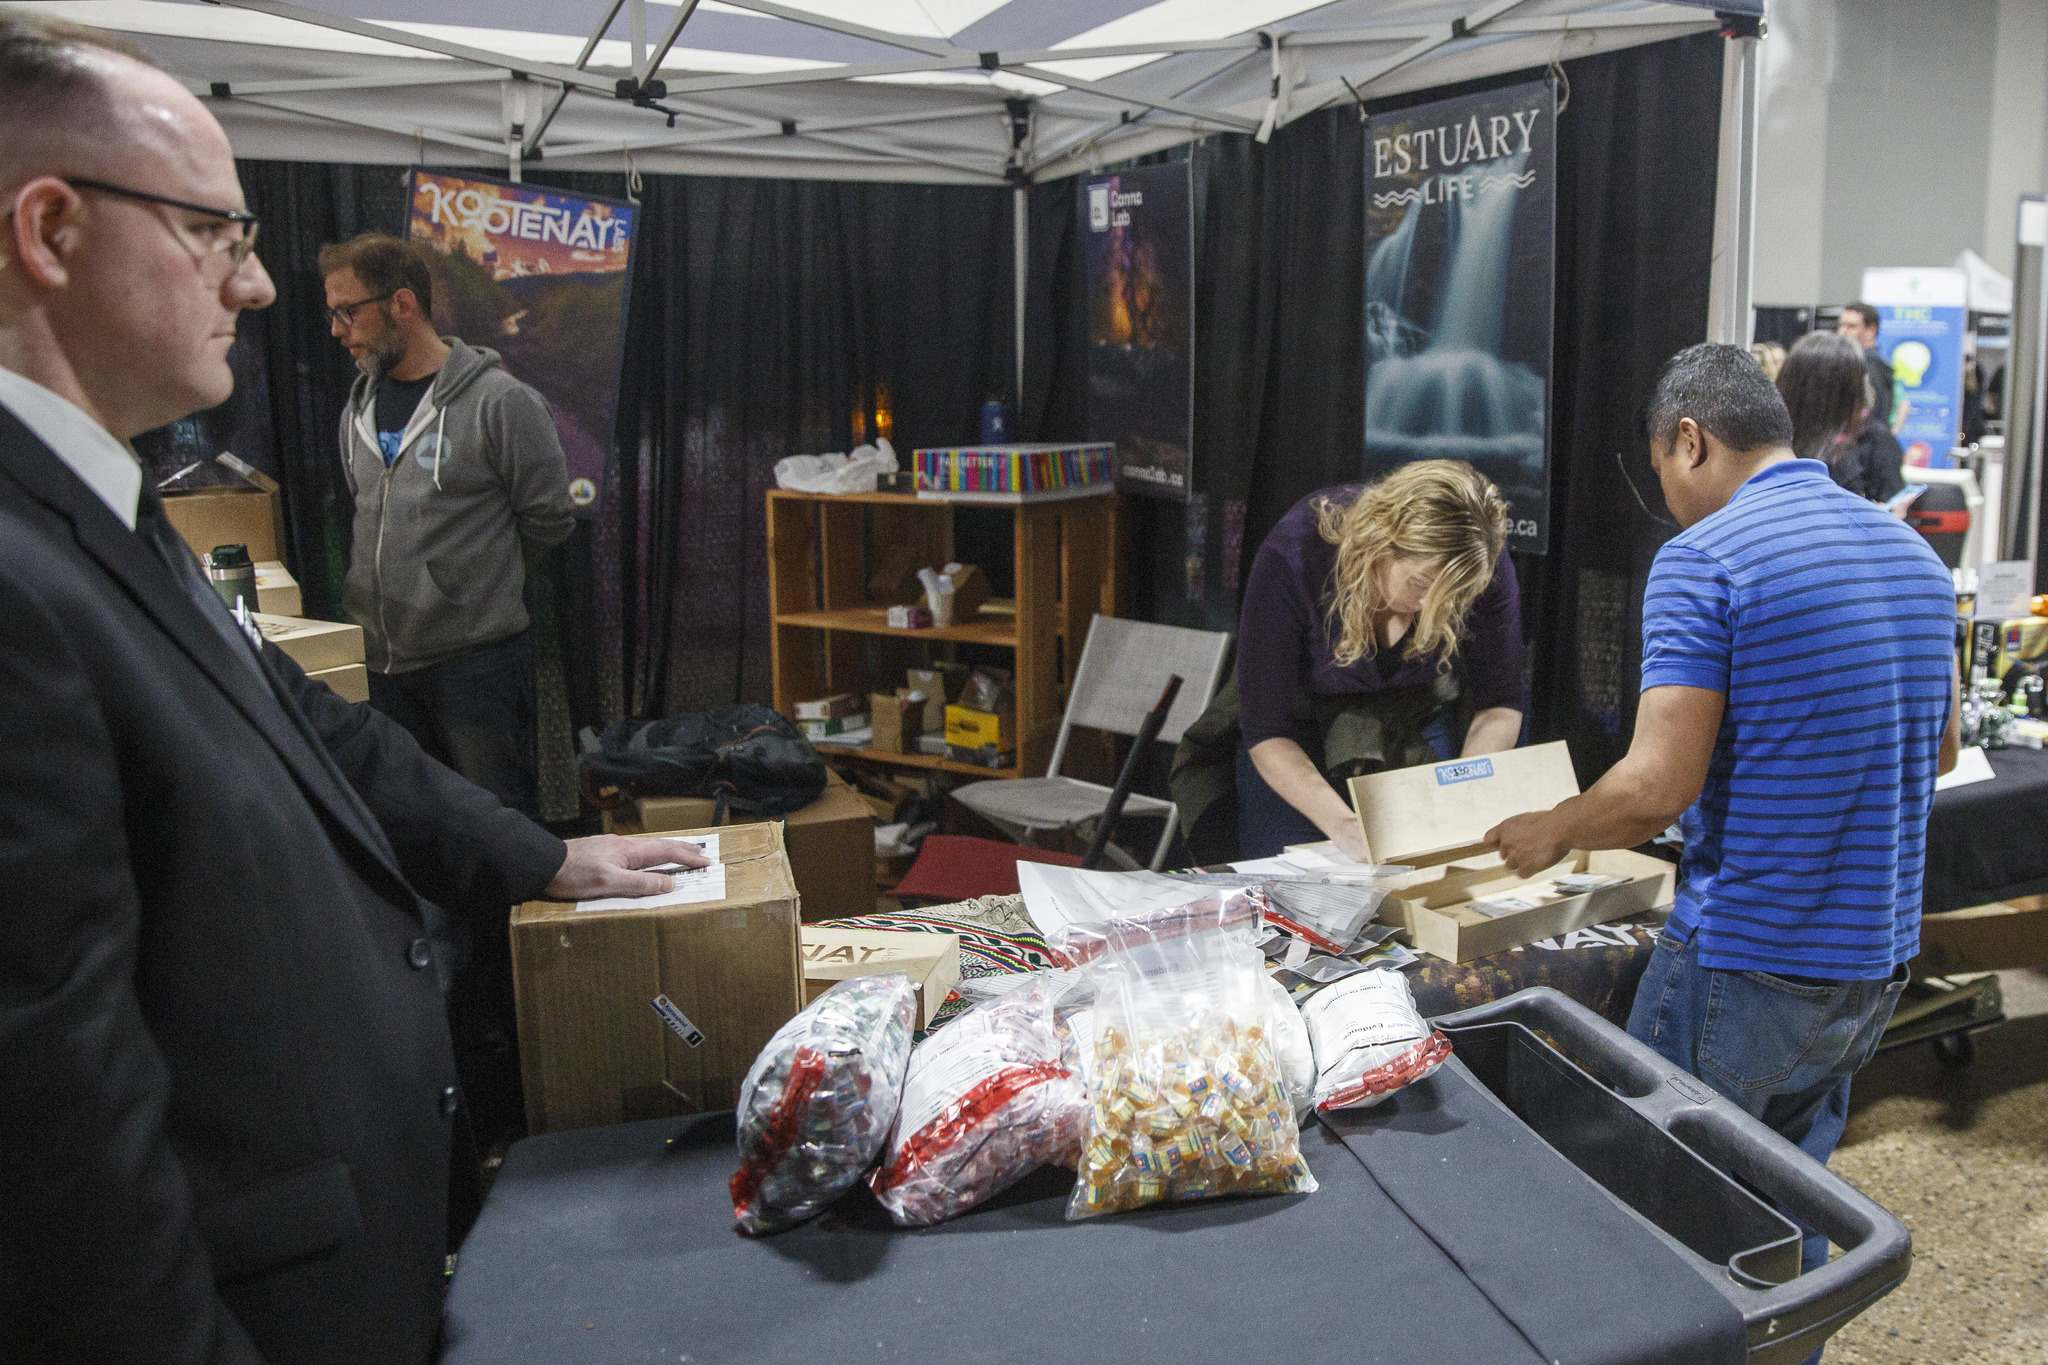 Investigators pack up illegal edible products that contain THC at the Hempfest Canada Expo at the RBC Convention centre Saturday afternoon. (Photos by Mike Deal / Winnipeg Free Press)